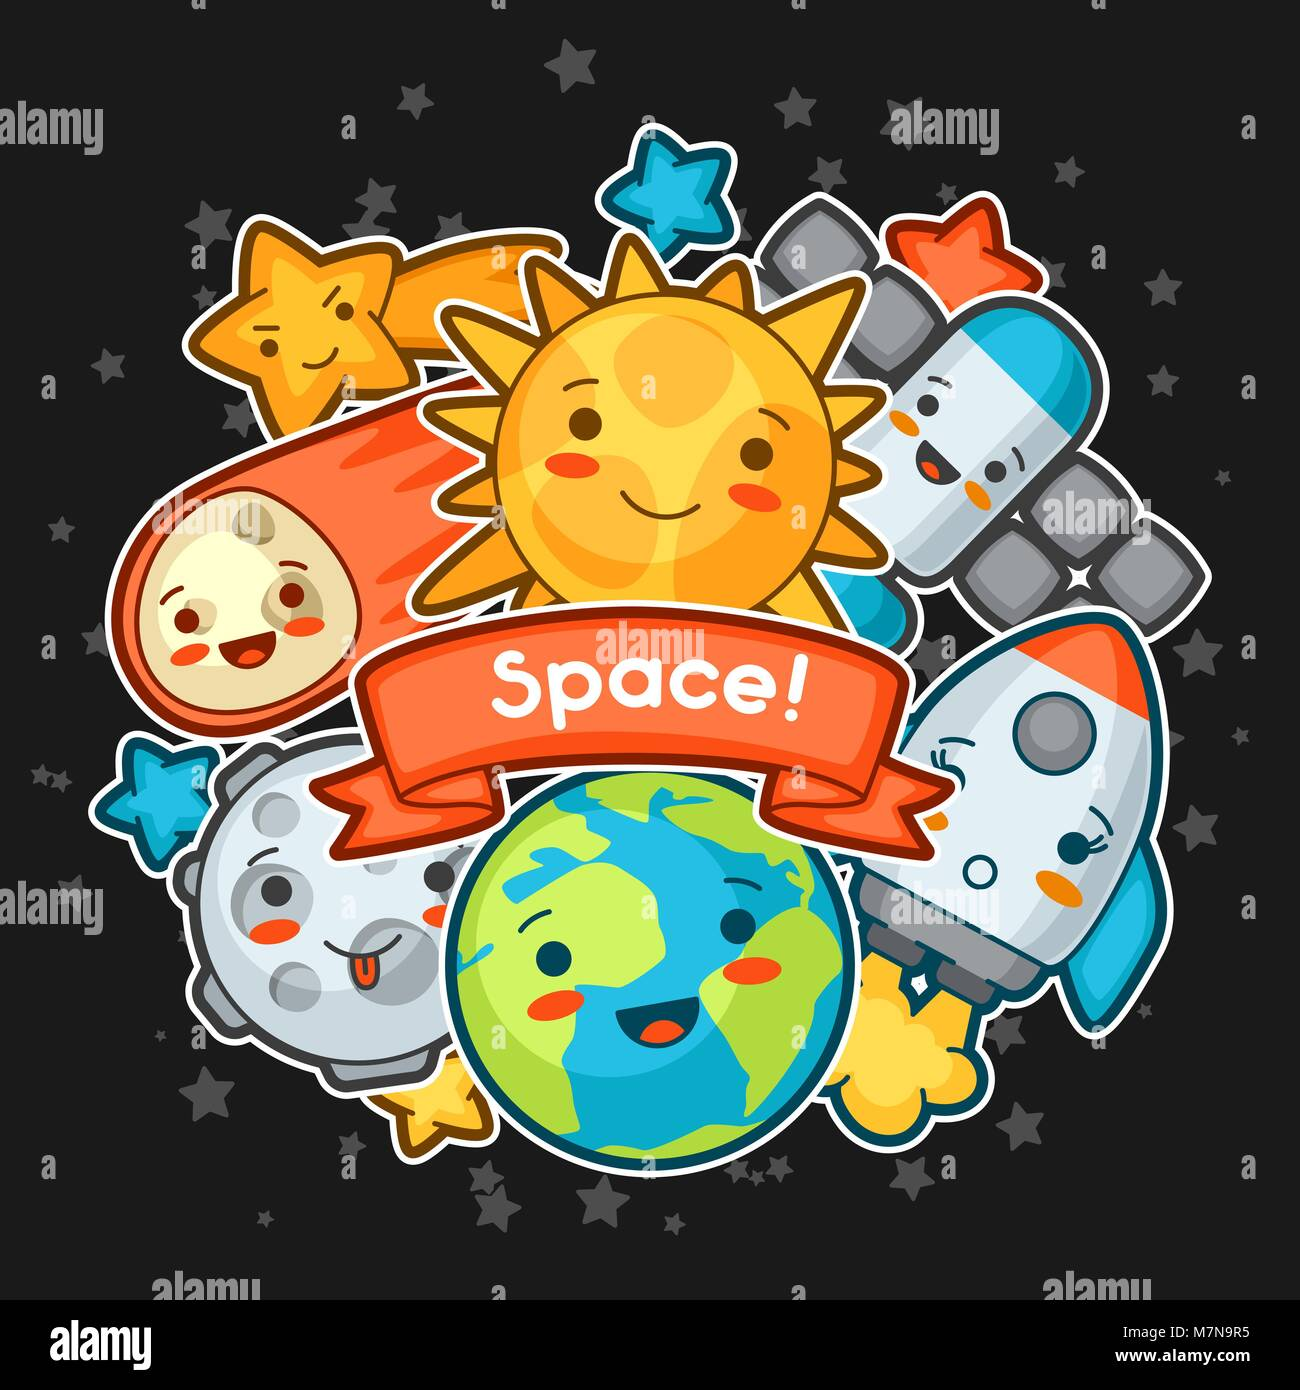 Kawaii space card. Doodles with pretty facial expression. Illustration of cartoon sun, earth, moon, rocket and celestial - Stock Image